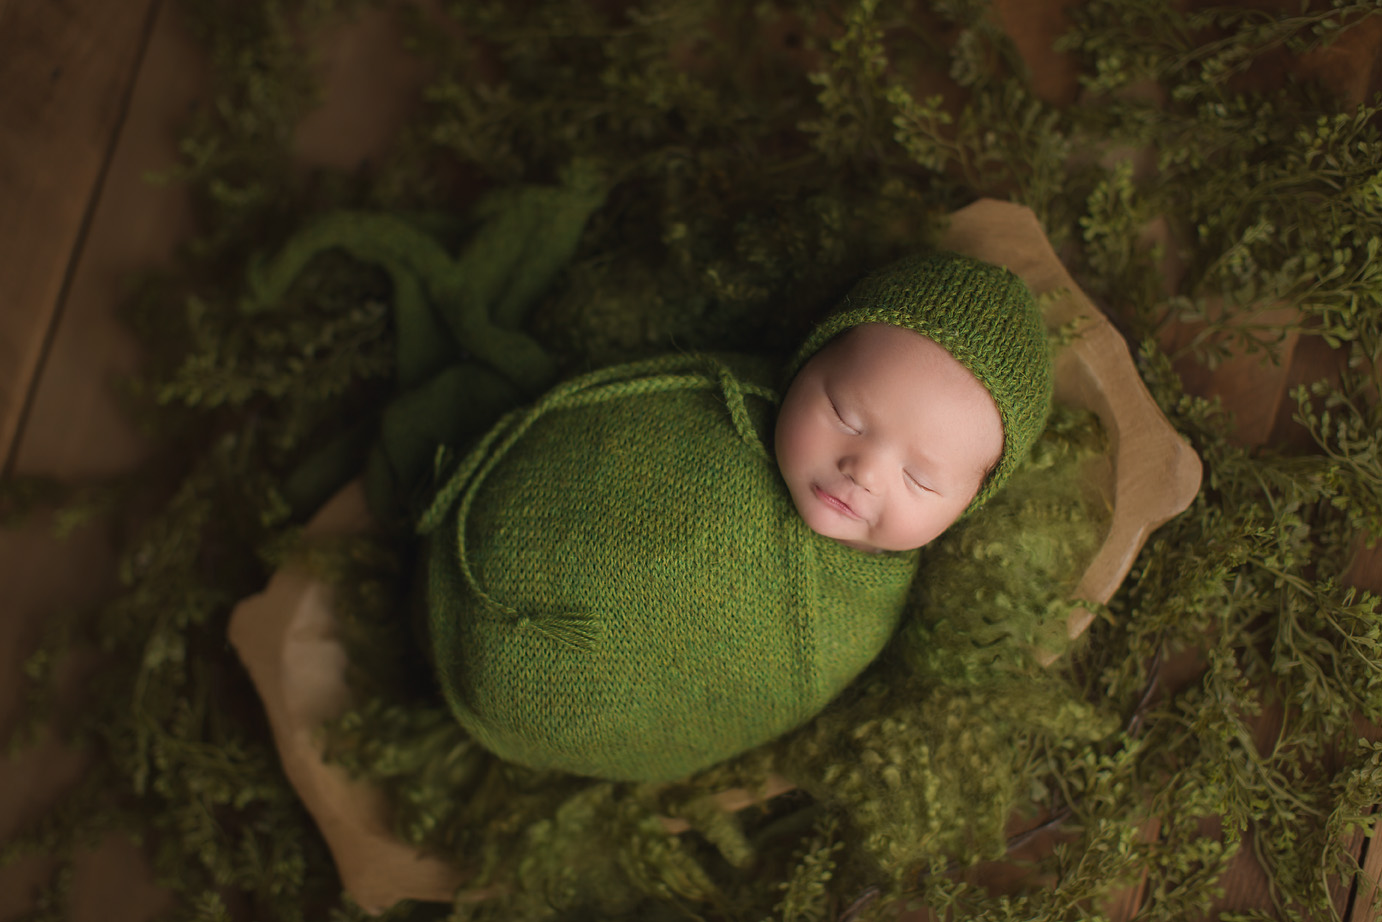 irvine-newborn-photography-studio-baby-photographer-green-natural-bonnet-leaves.jpg